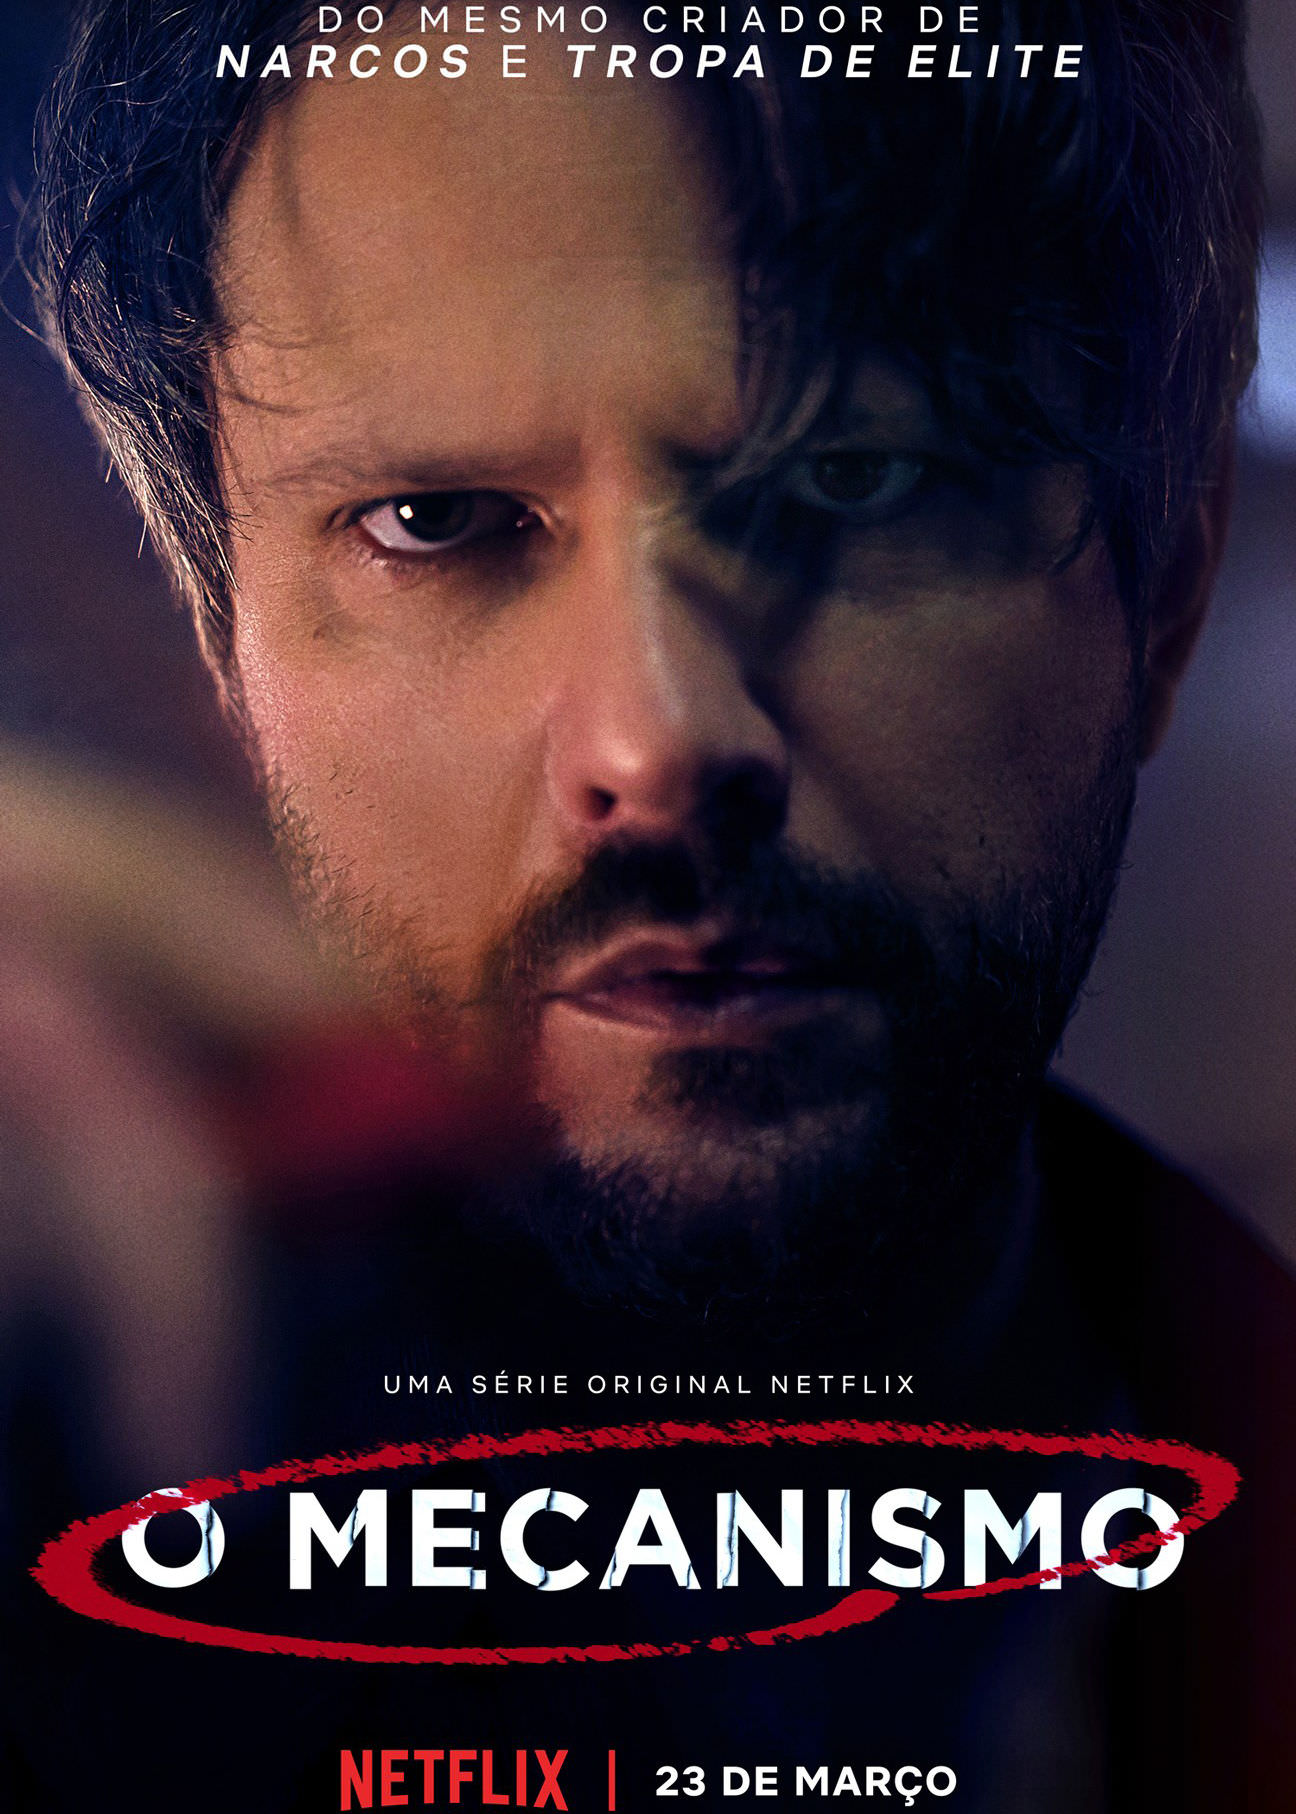 Review | O Mecanismo - 1 ª Temporada